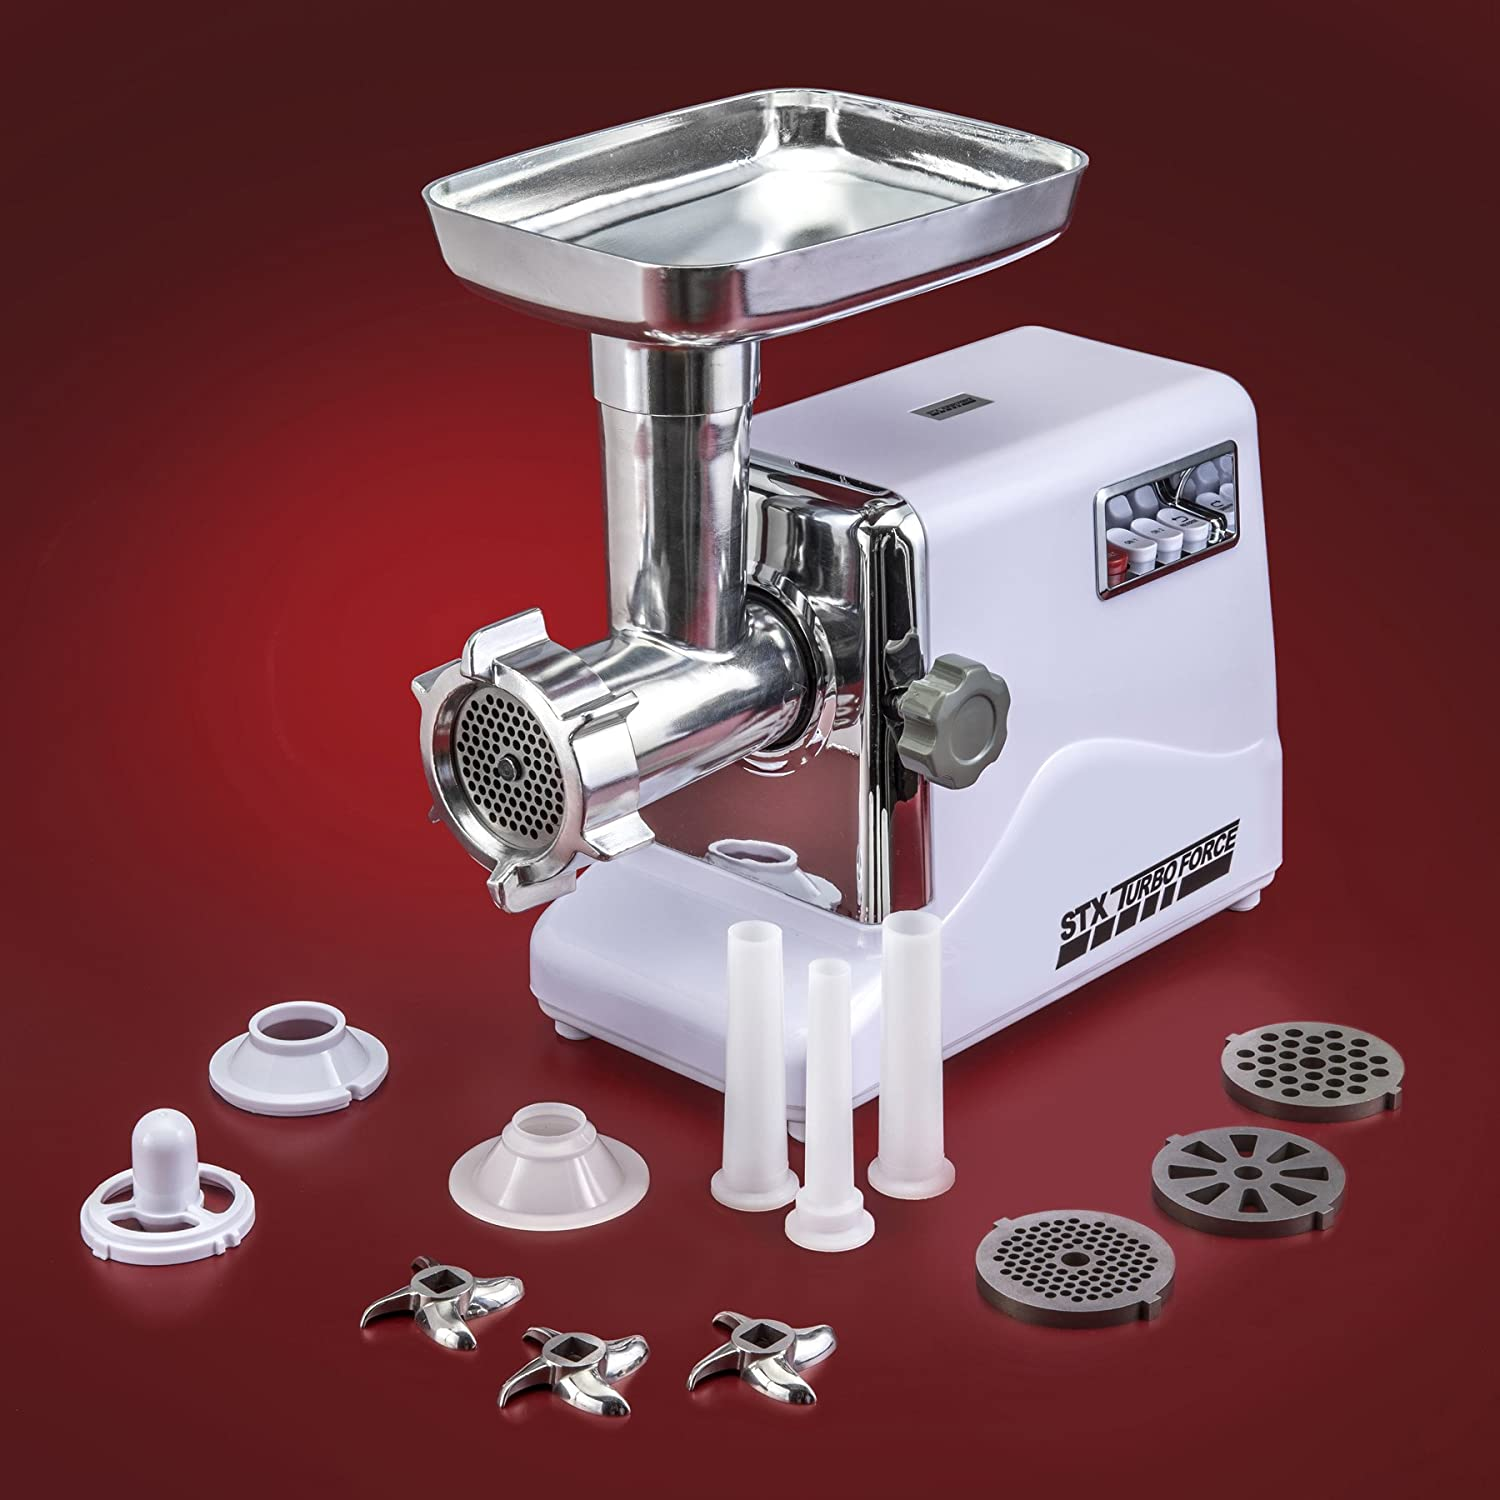 Electric meat grinder with accessories